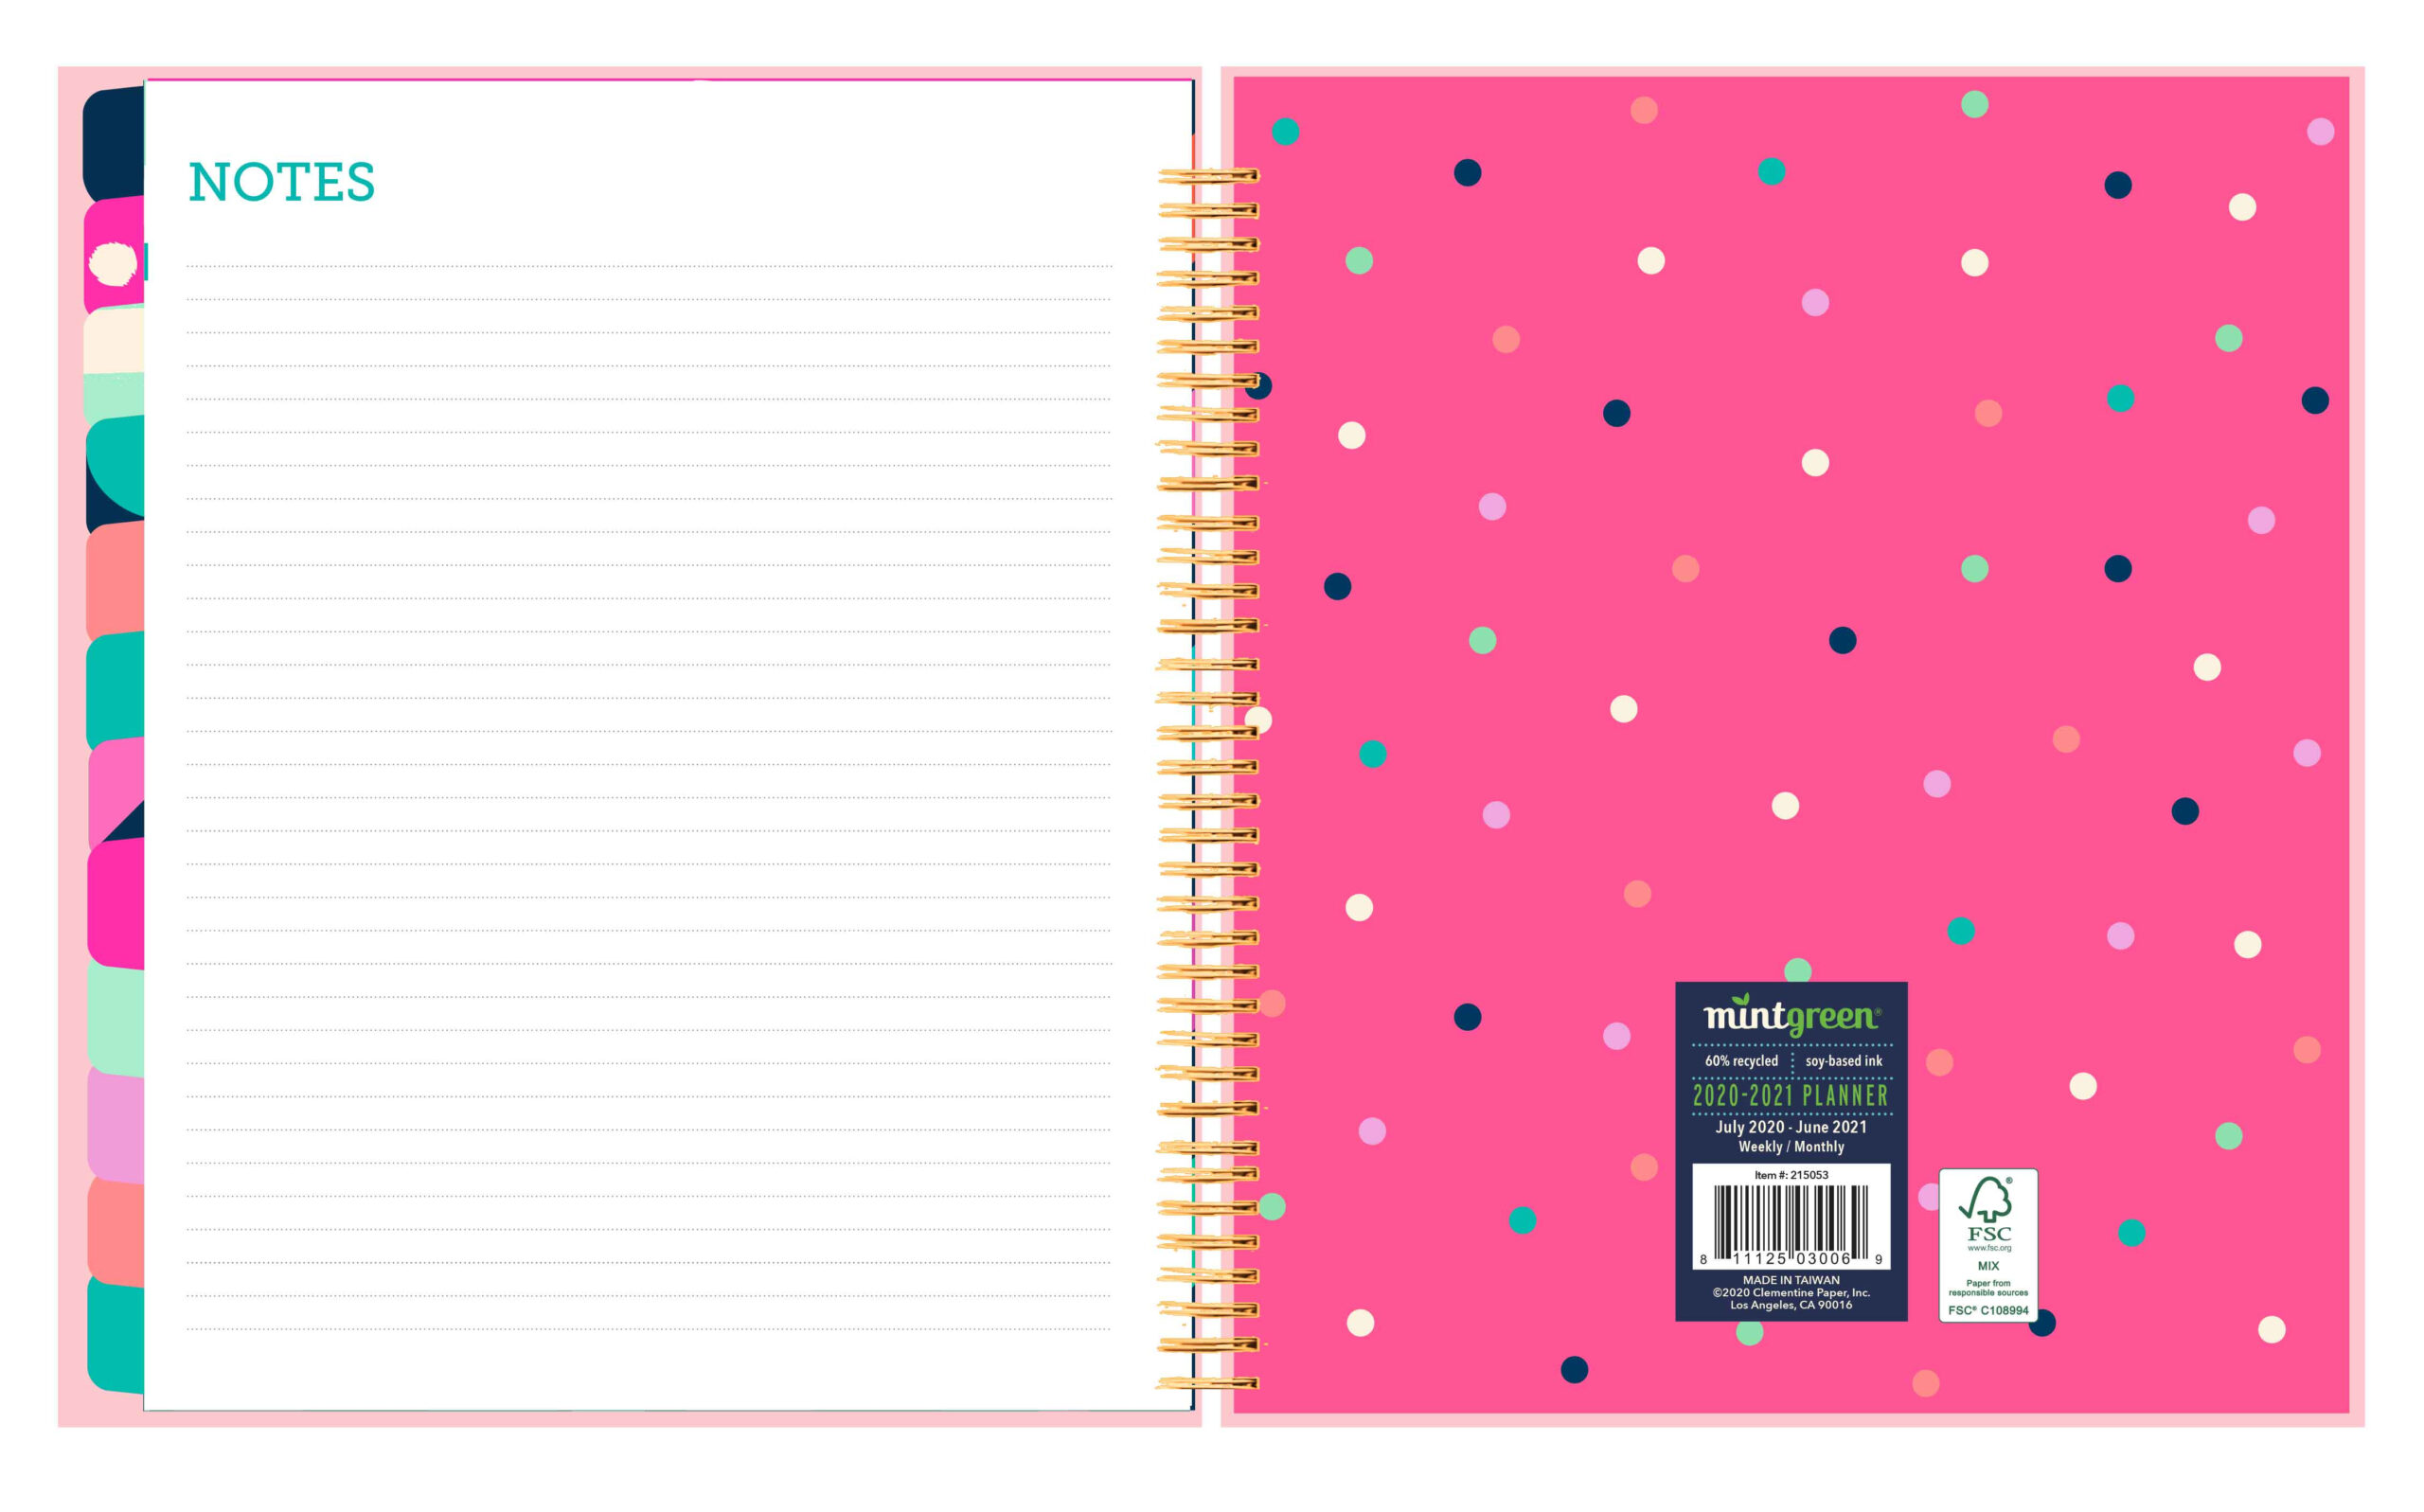 2020-2021 Mintgreen Medium Inspirational Spiral Weekly Monthly Planner intended for Hunting Planner 2021 Monthly